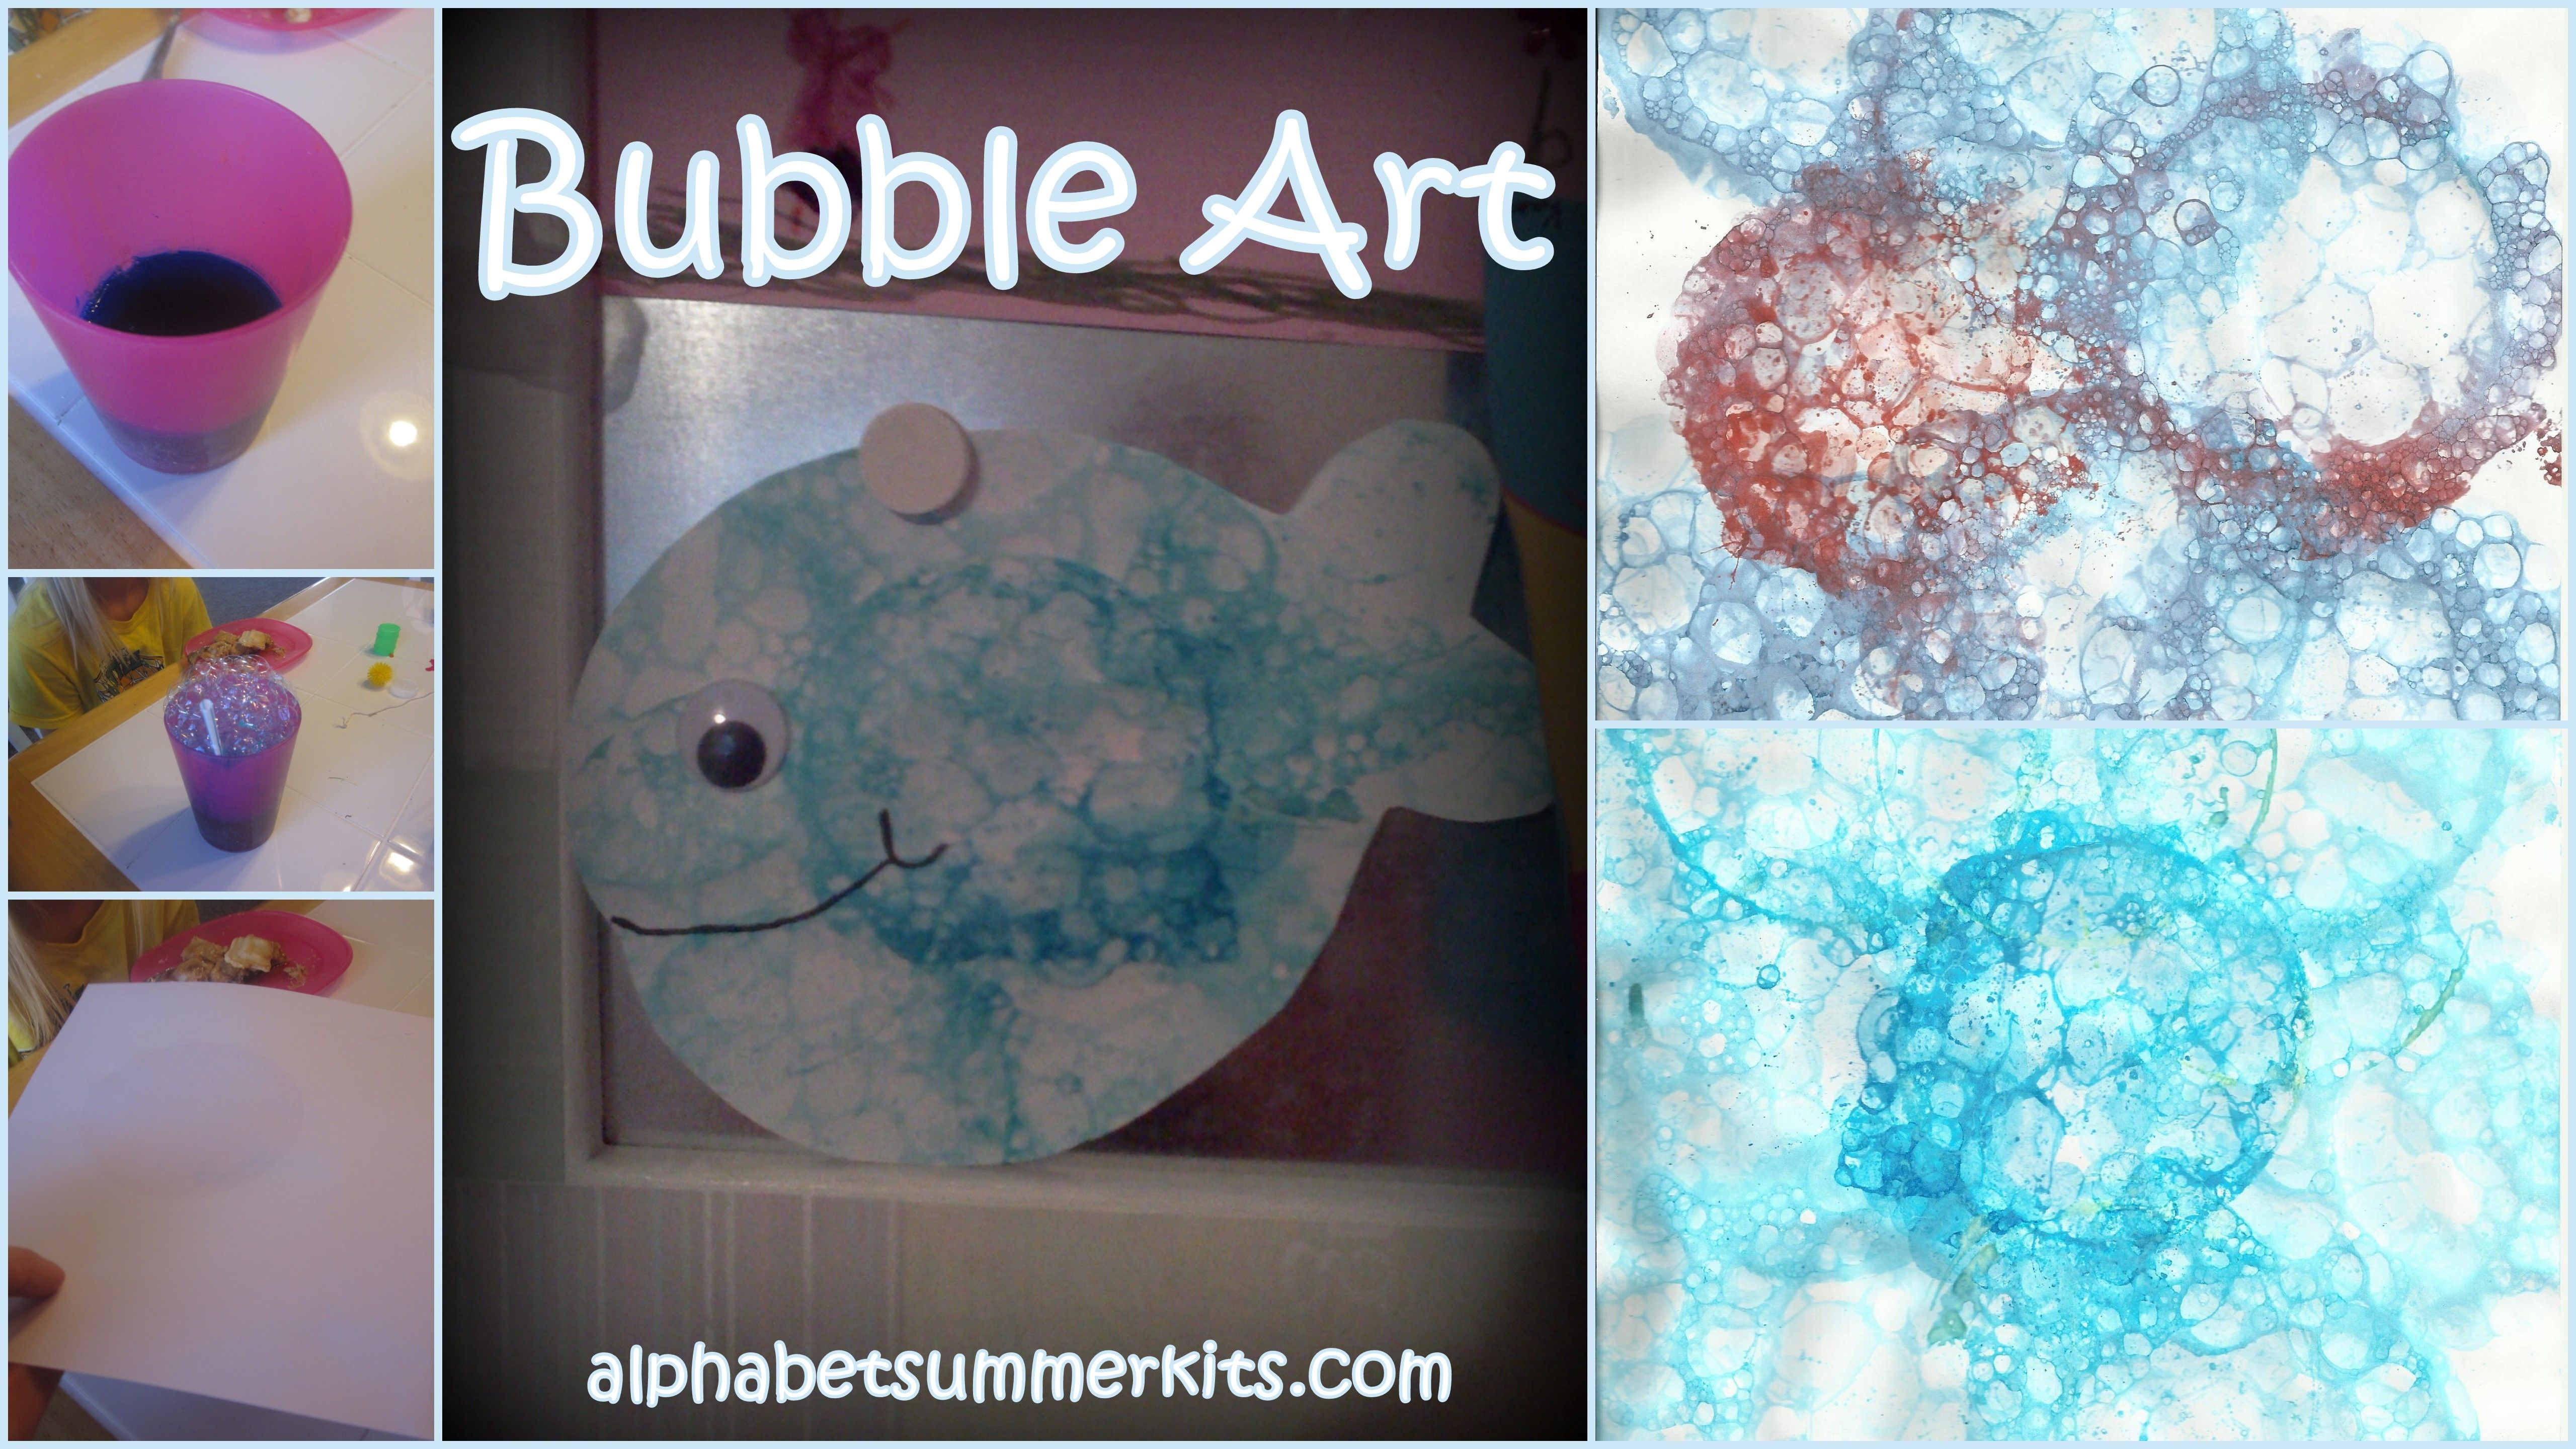 Bubble art for kids - easy, fun and makes a great effect, especially for an underwater background!